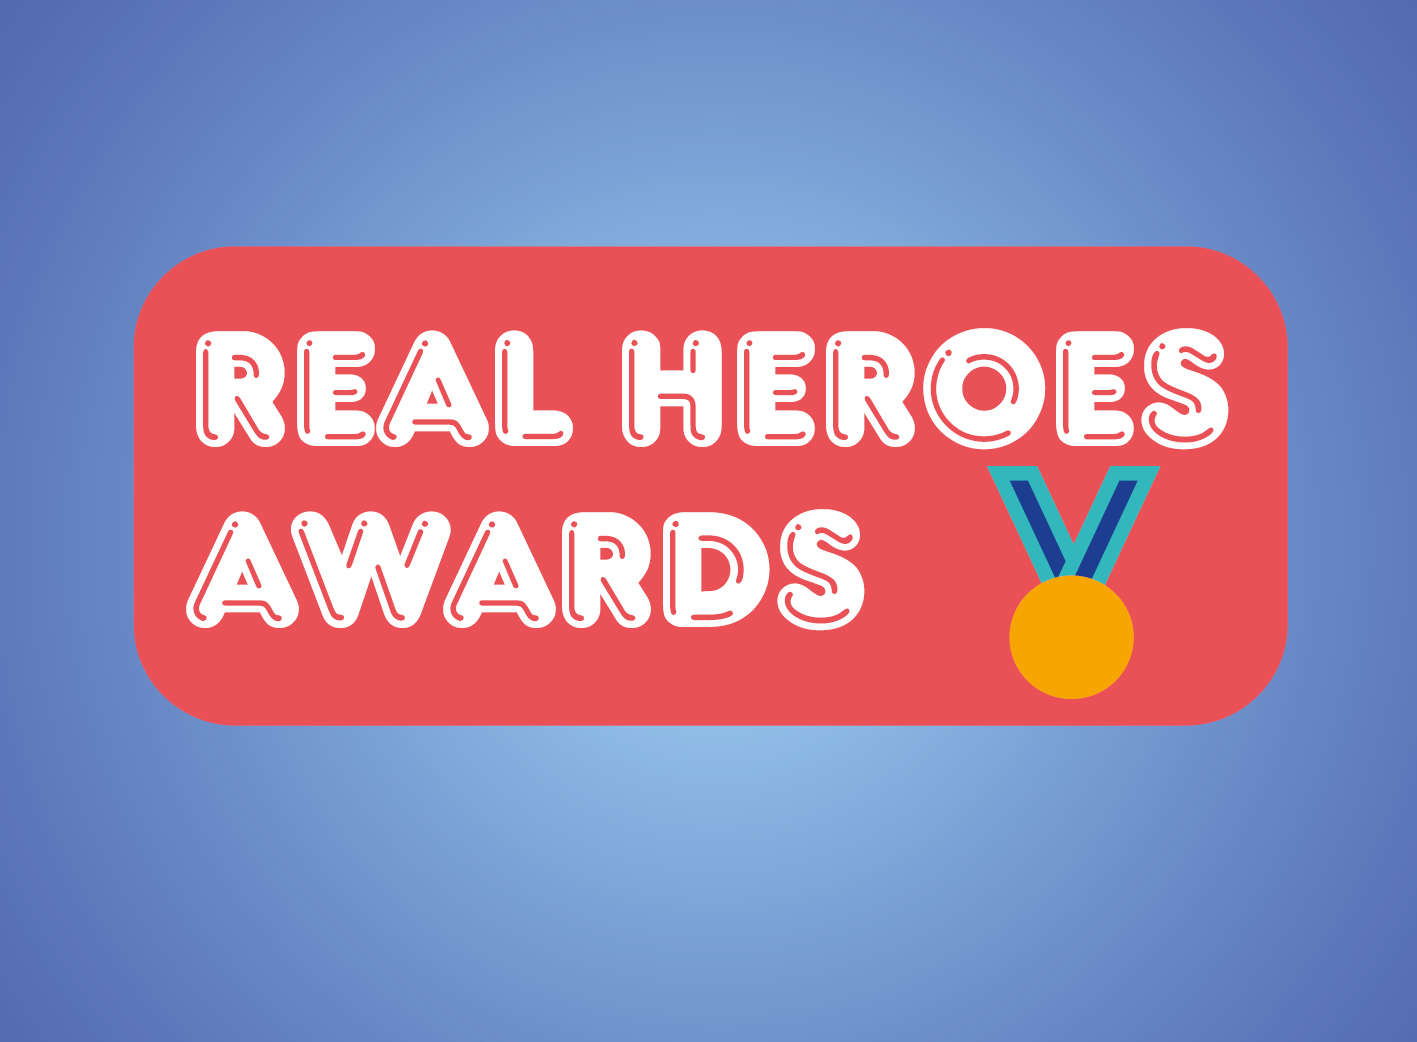 Launch of the Real Heroes Awards